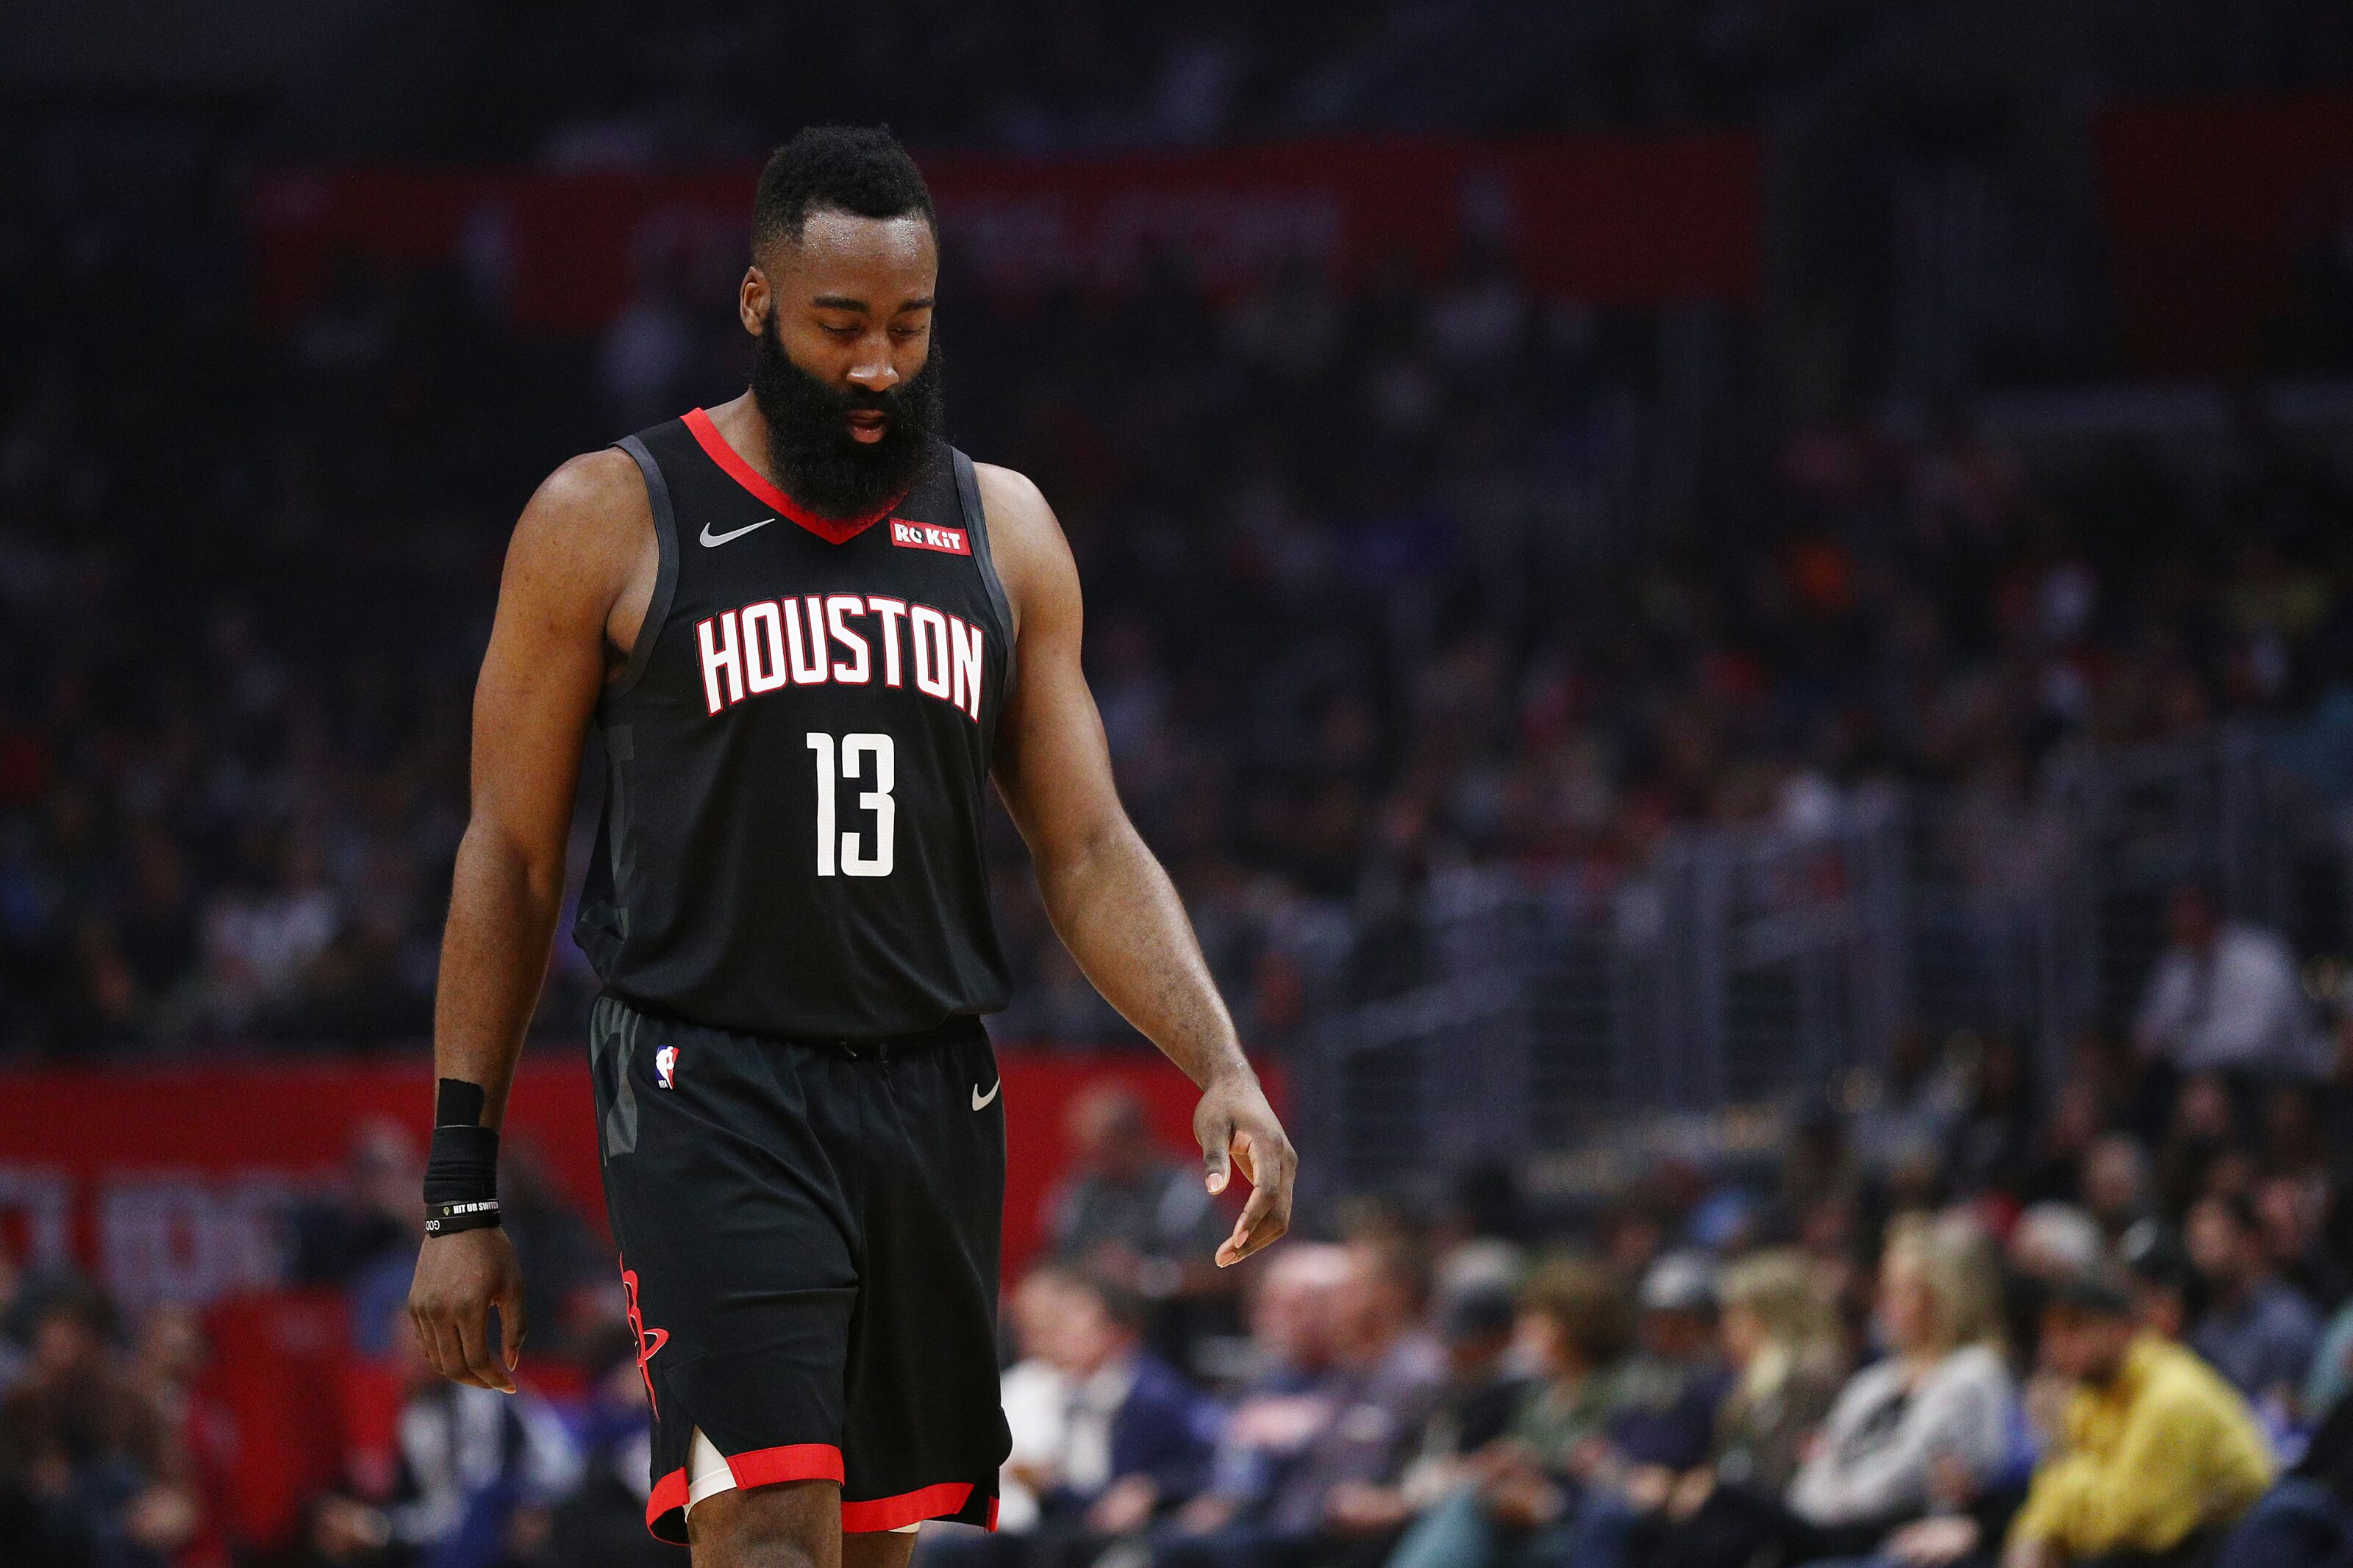 Houston Rockets: James Harden still has time to win a title